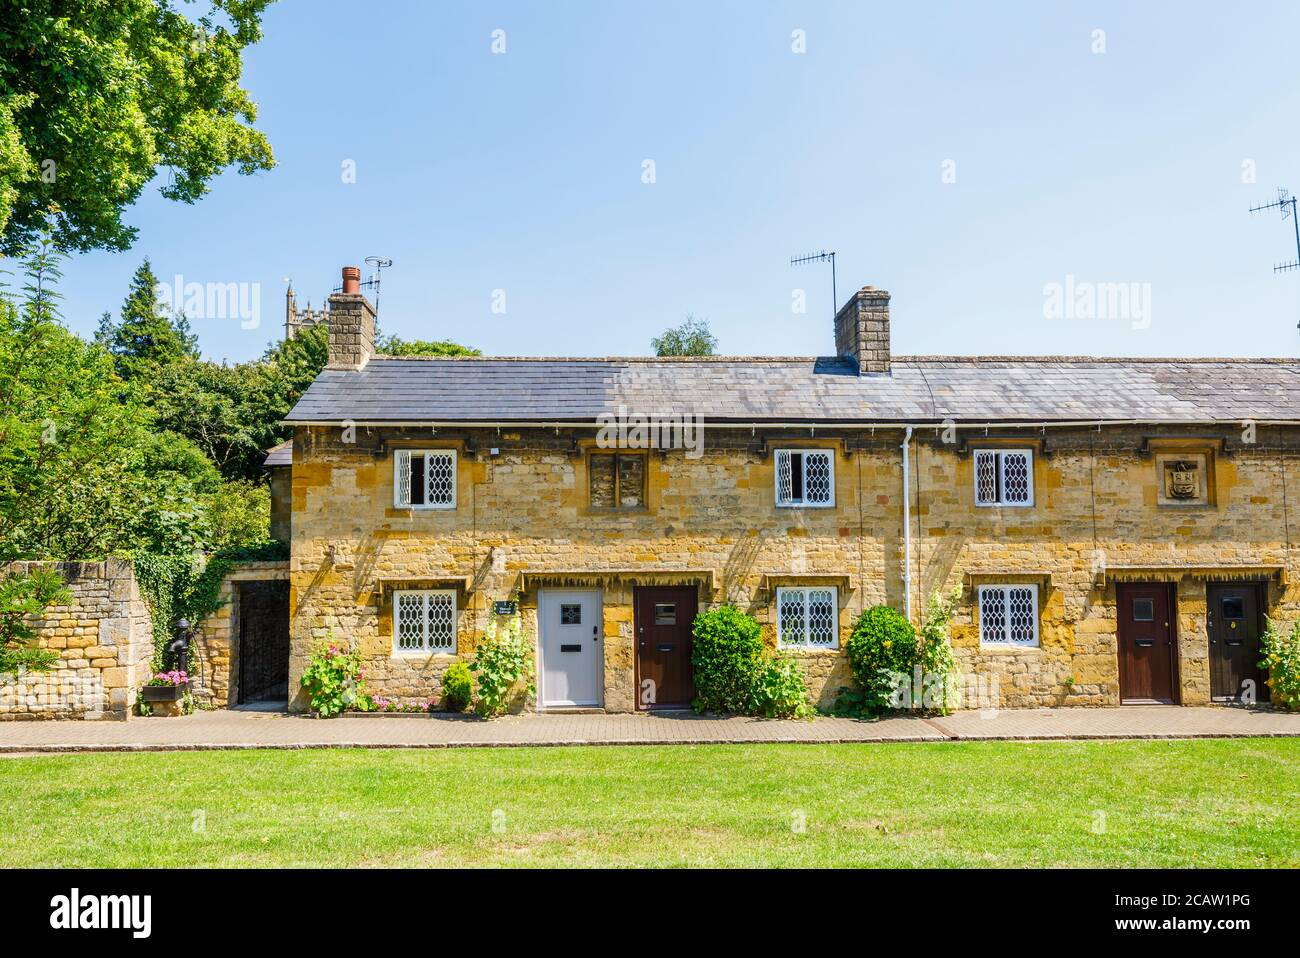 A picturesque row of charming roadside Cotswold Stone cottages in Chipping Campden, a small market town in the Cotswolds in Gloucestershire Stock Photo